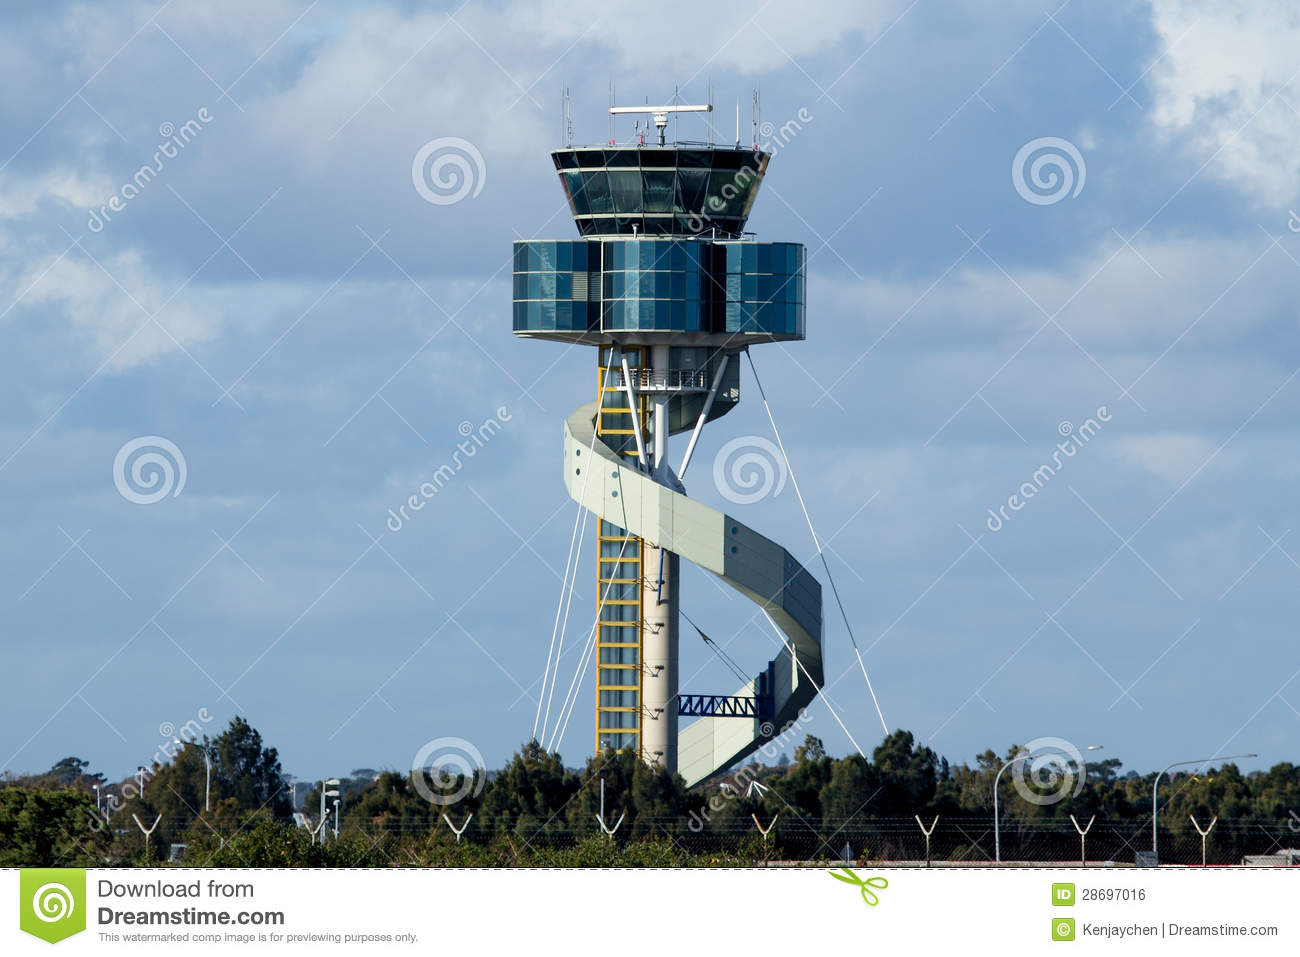 Air Traffic Controller business research papers free download